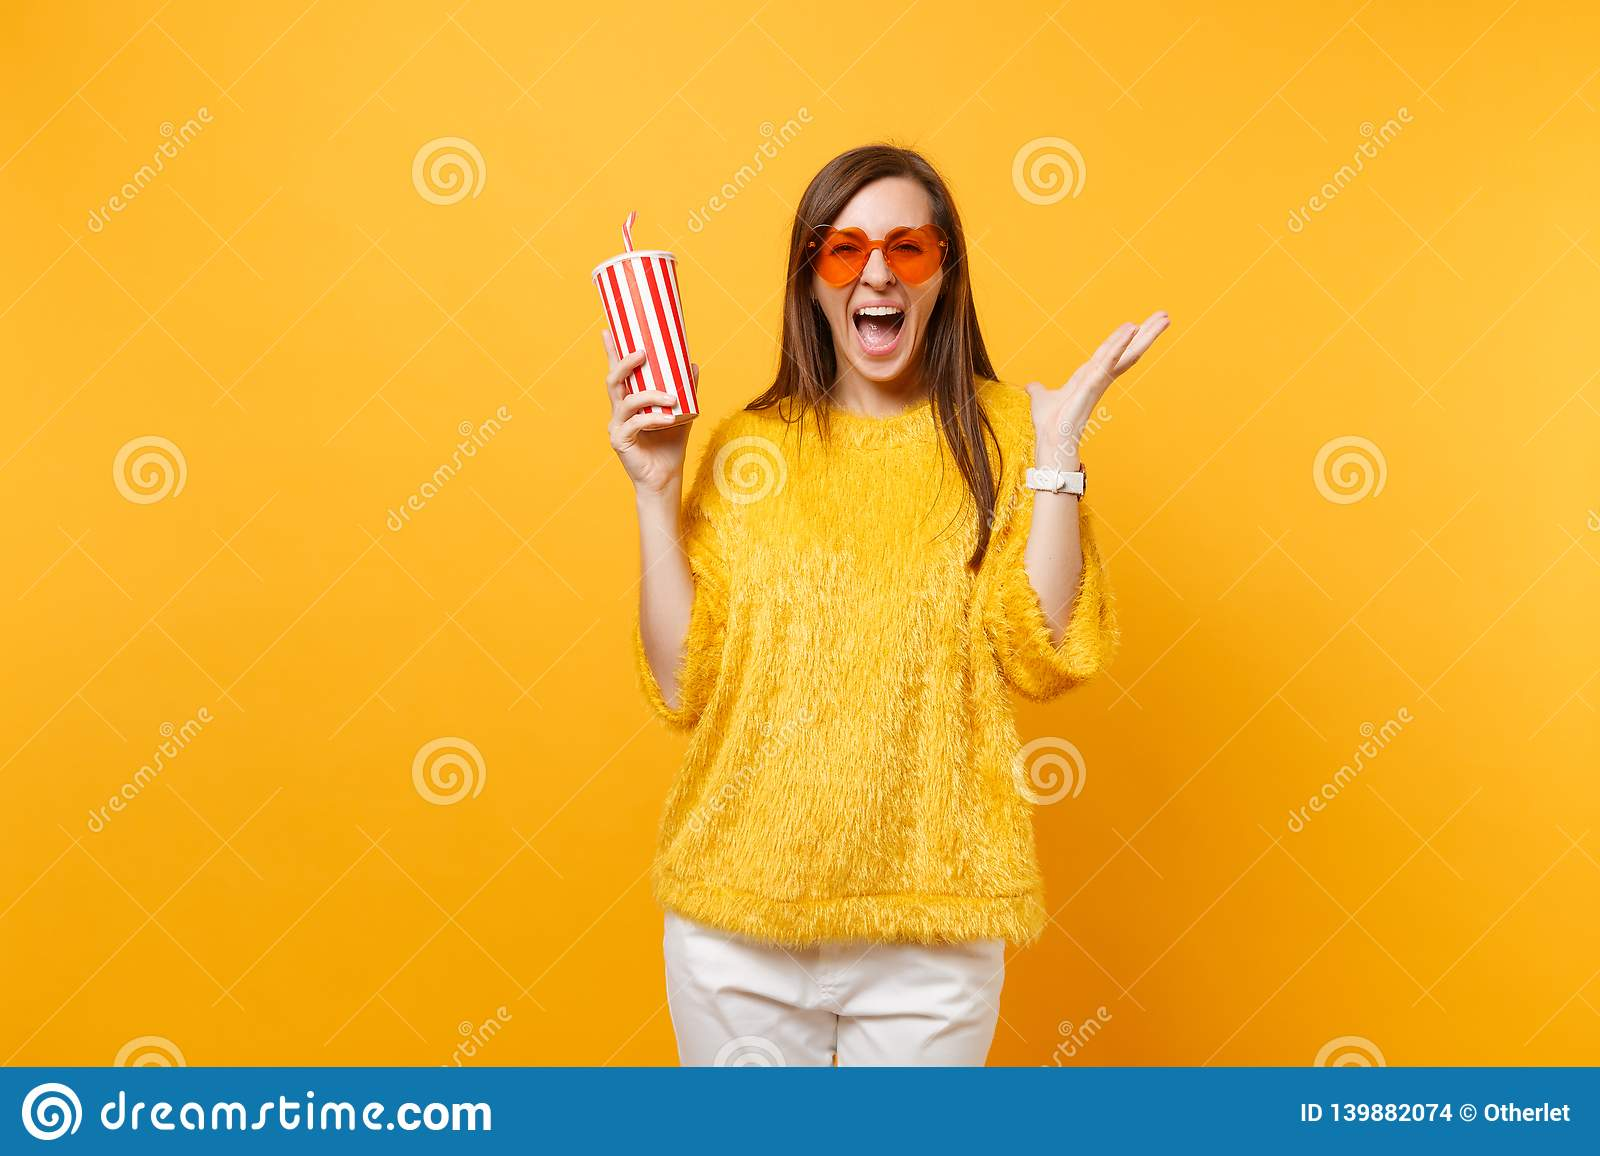 Happy young woman in heart orange glasses spreading hands, screaming, holding plastic cup with cola or soda isolated on